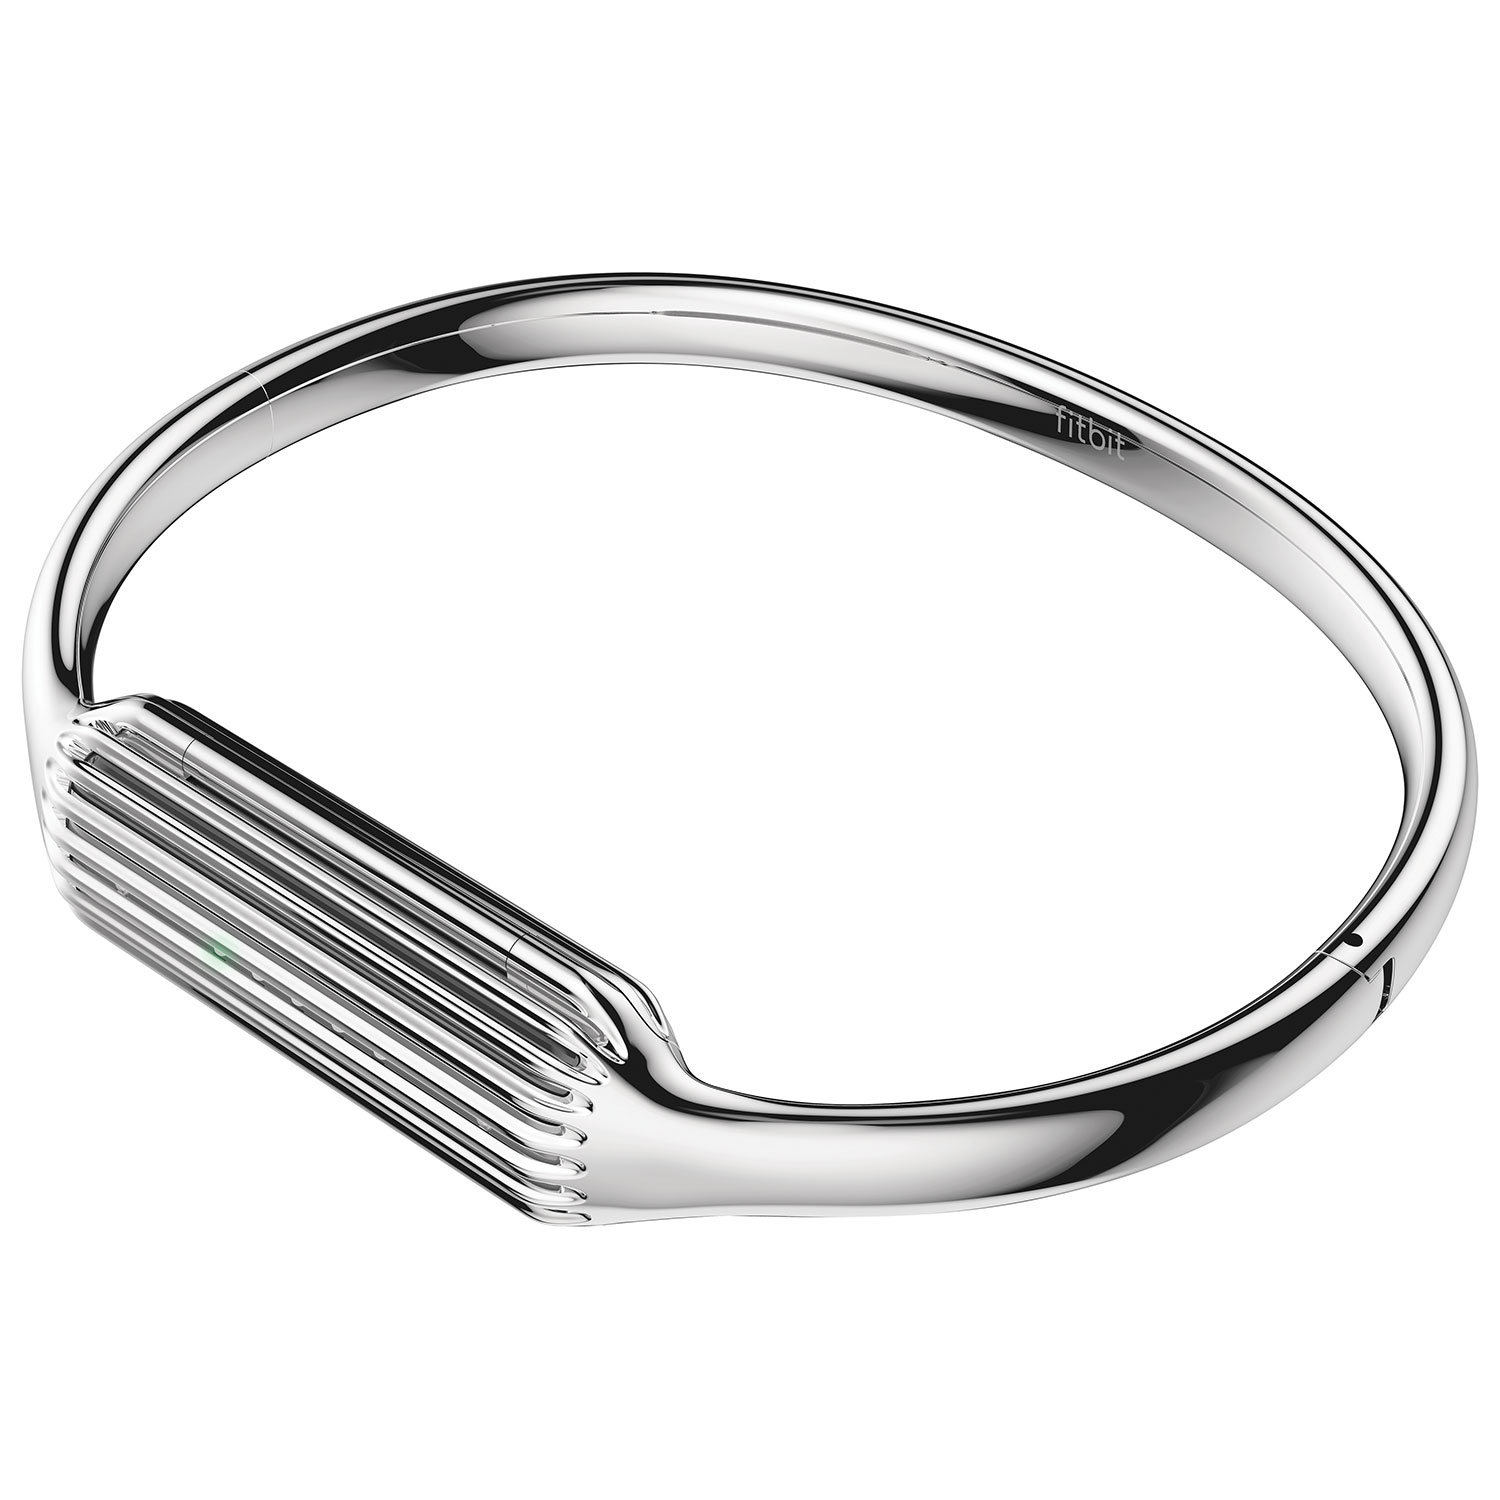 silver jewelry in shape gold large fullxfull organic il textured and bangle shop cm bangles circumference metal shapes oval